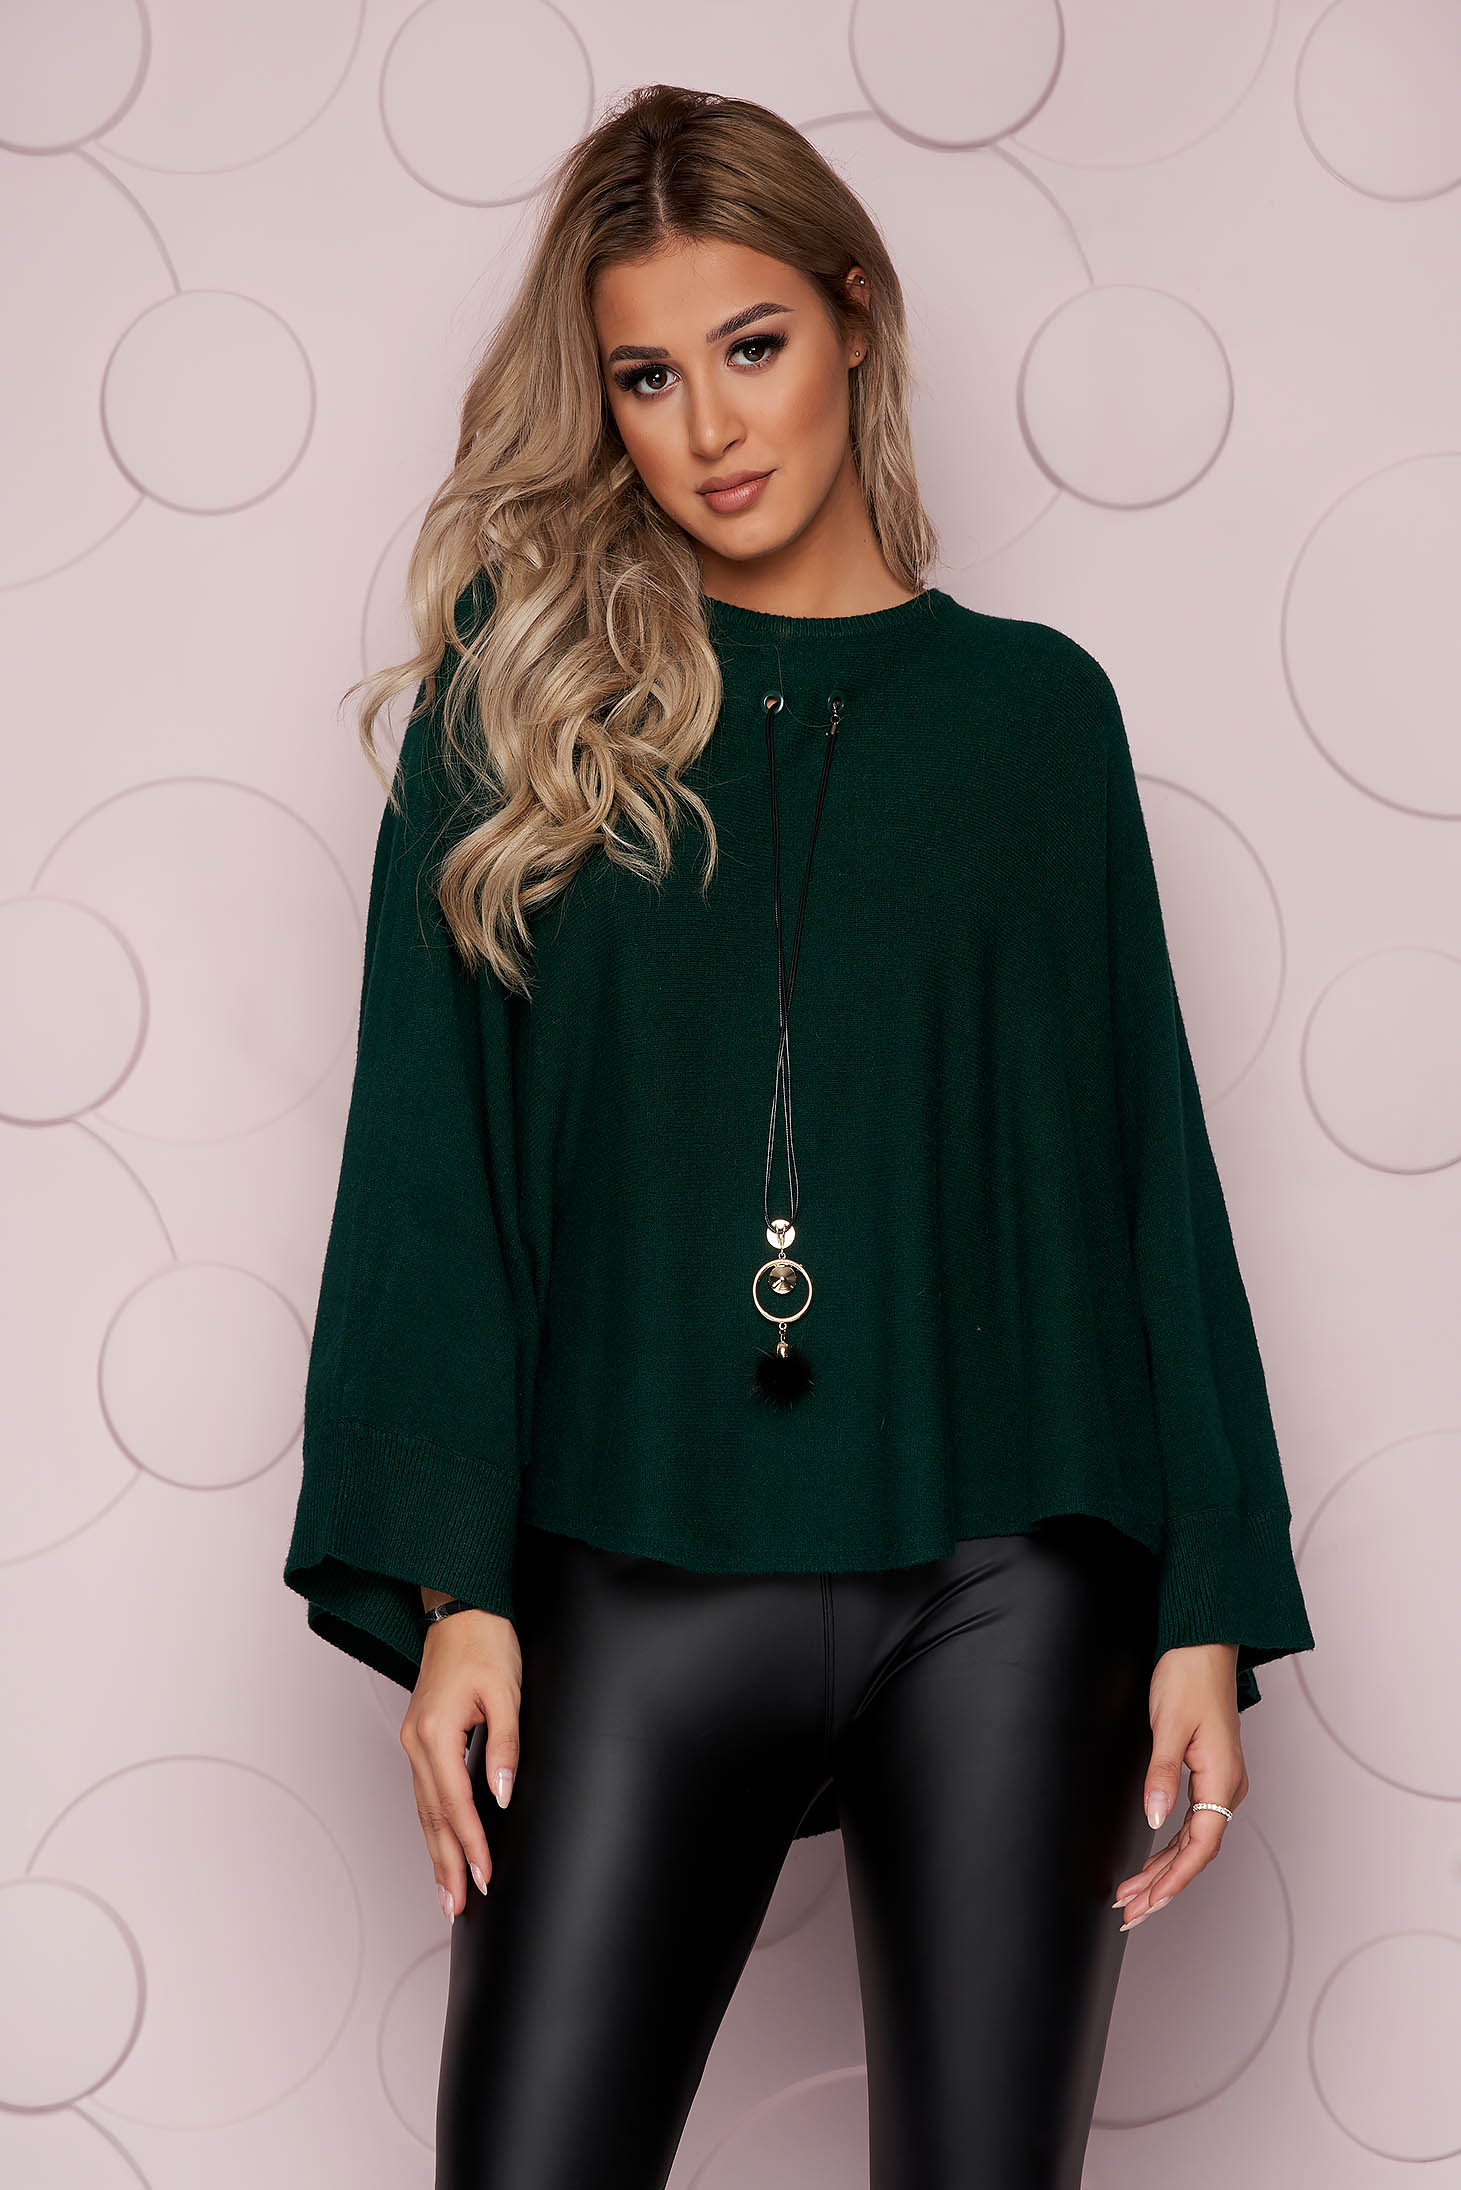 Darkgreen sweater loose fit knitted fabric from elastic fabric casual accesorised with necklace